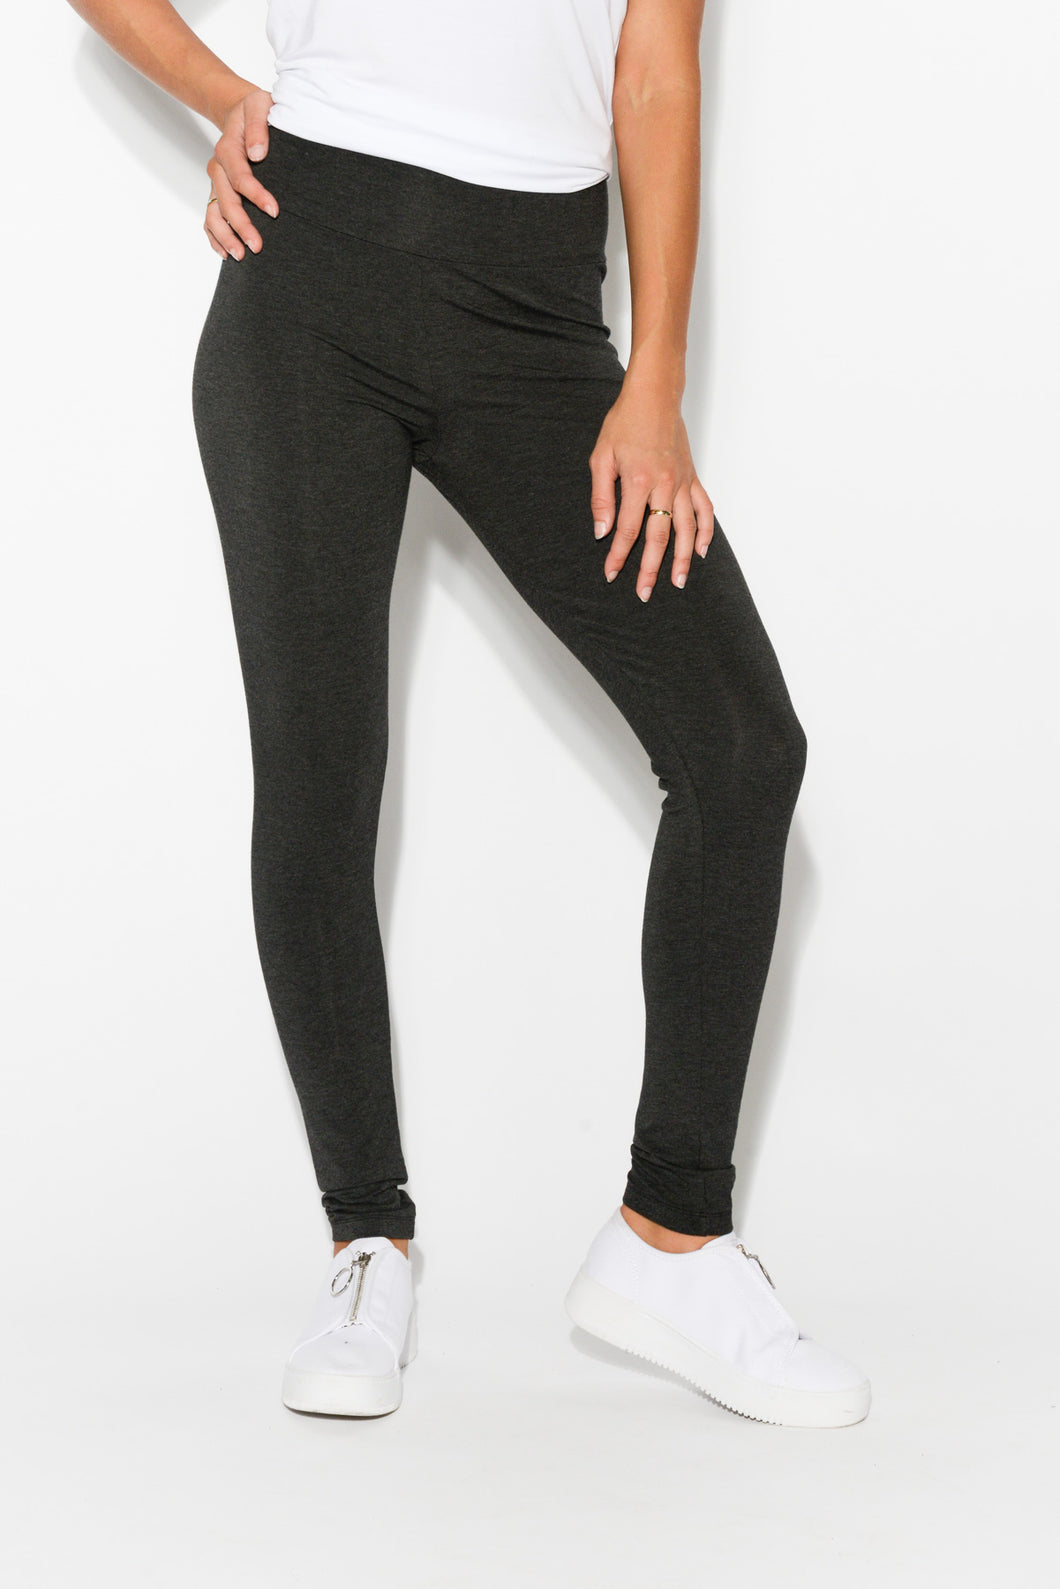 Charcoal Bamboo Stretch Leggings - Blue Bungalow